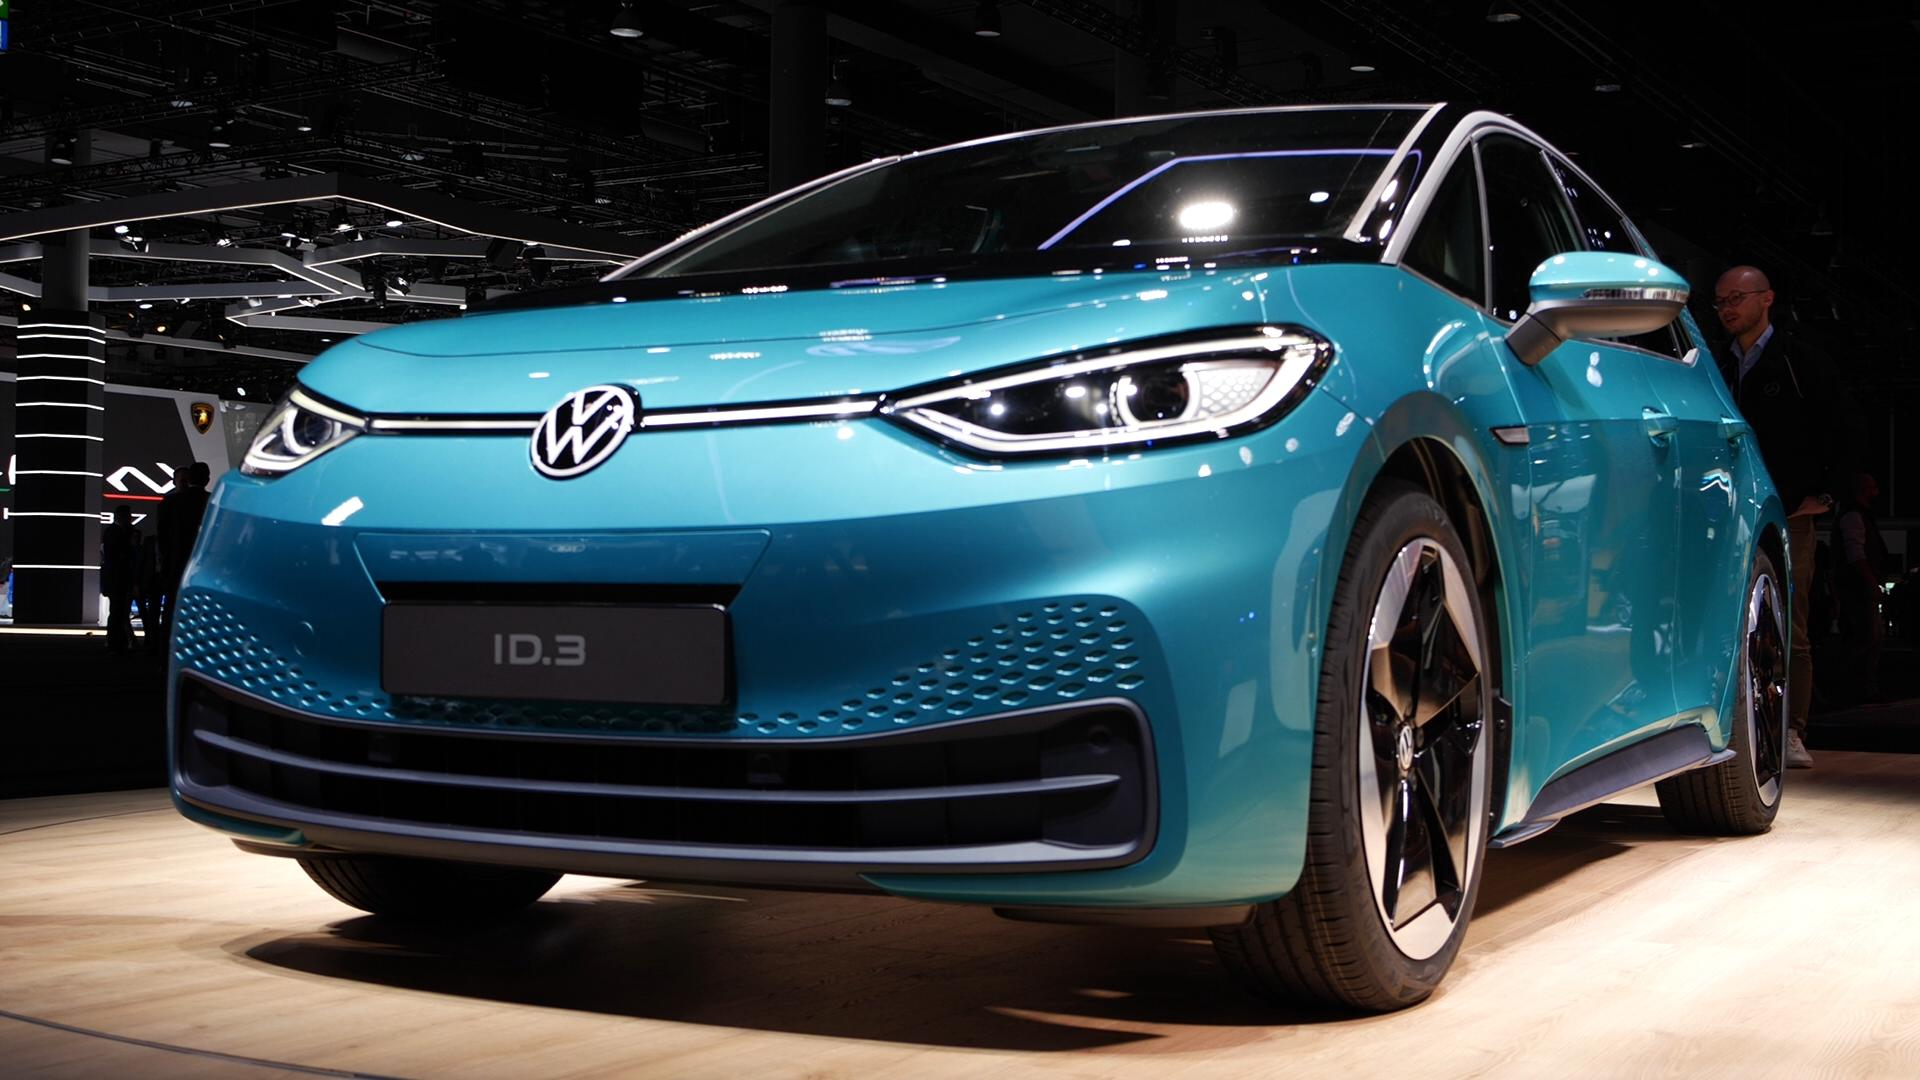 Video: VW ID 3 proves popular at the Frankfurt Motor Show